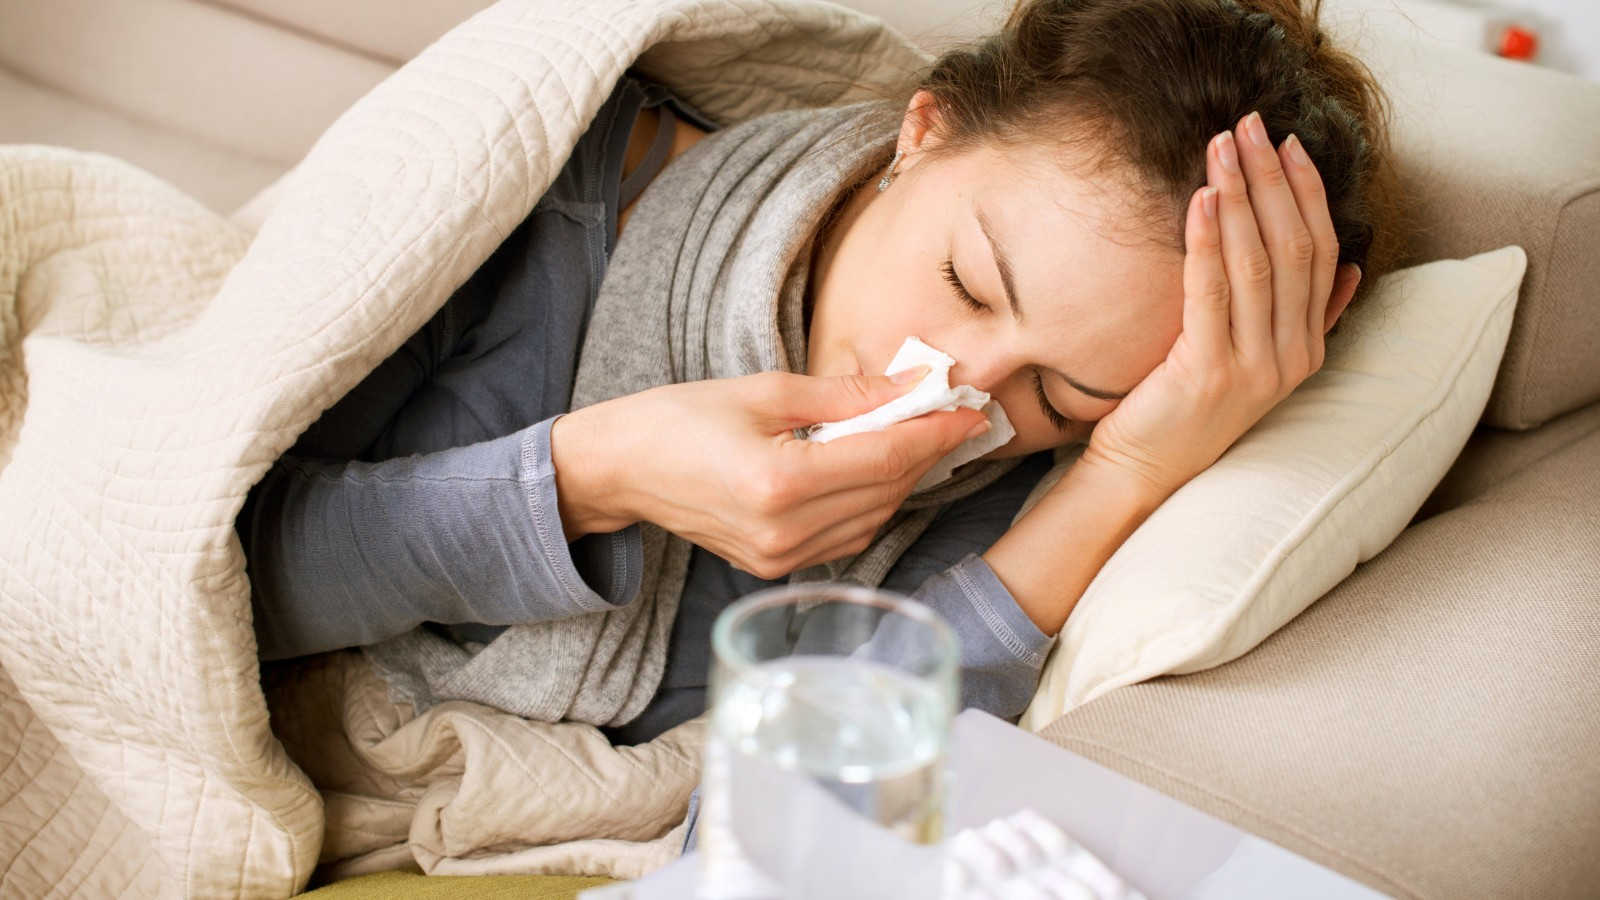 Read more on weekly flu report centers for disease control and - Flu Spreads Across 40 States